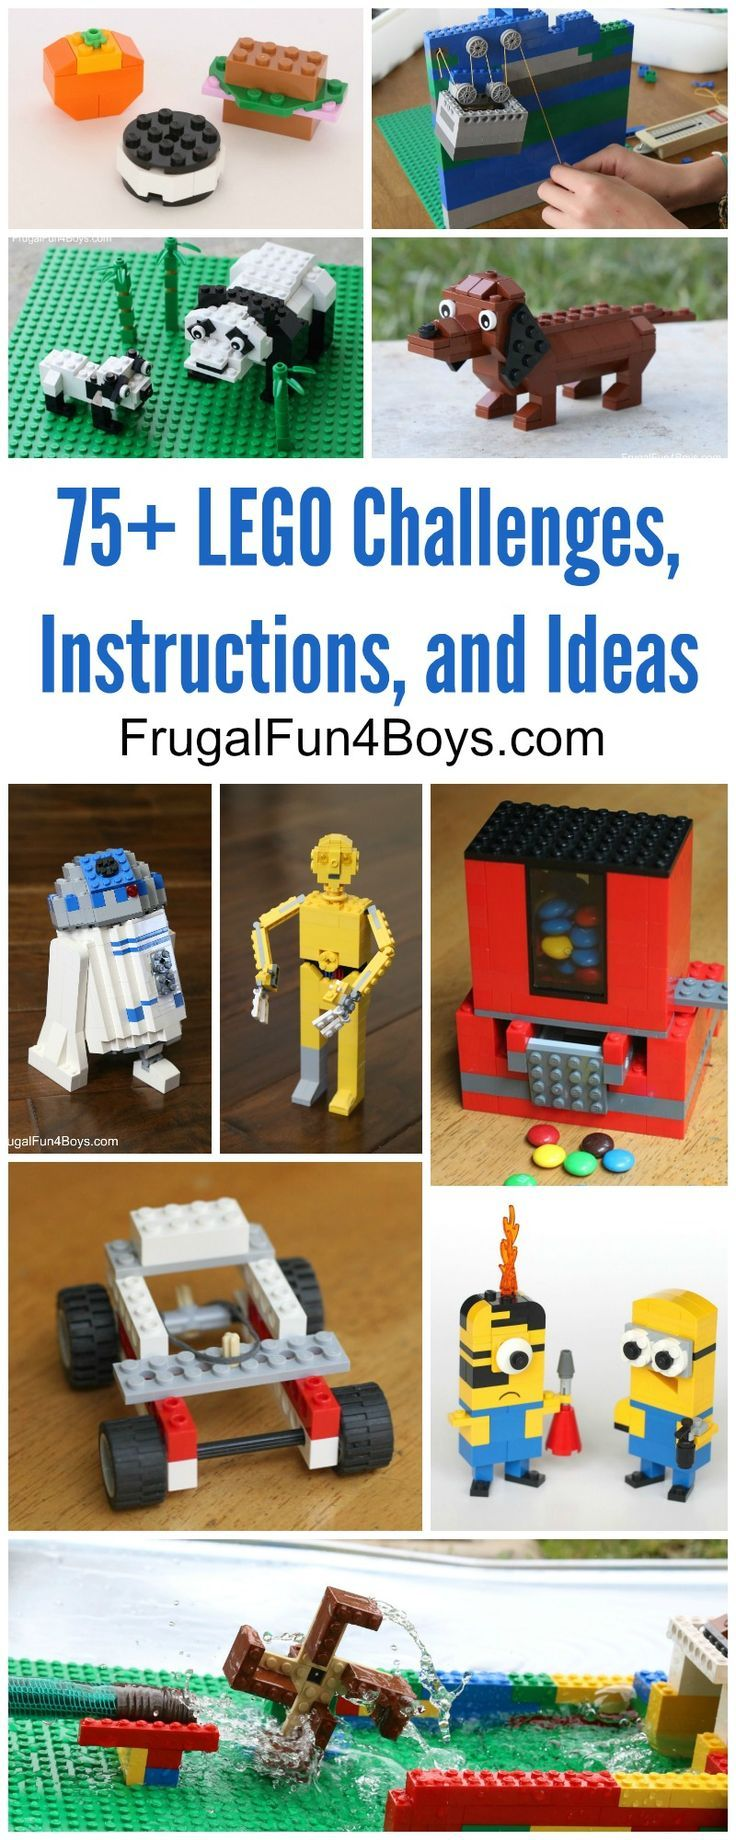 50+ Lego Building Projects for Kids – #building #Kids #Lego #Projects